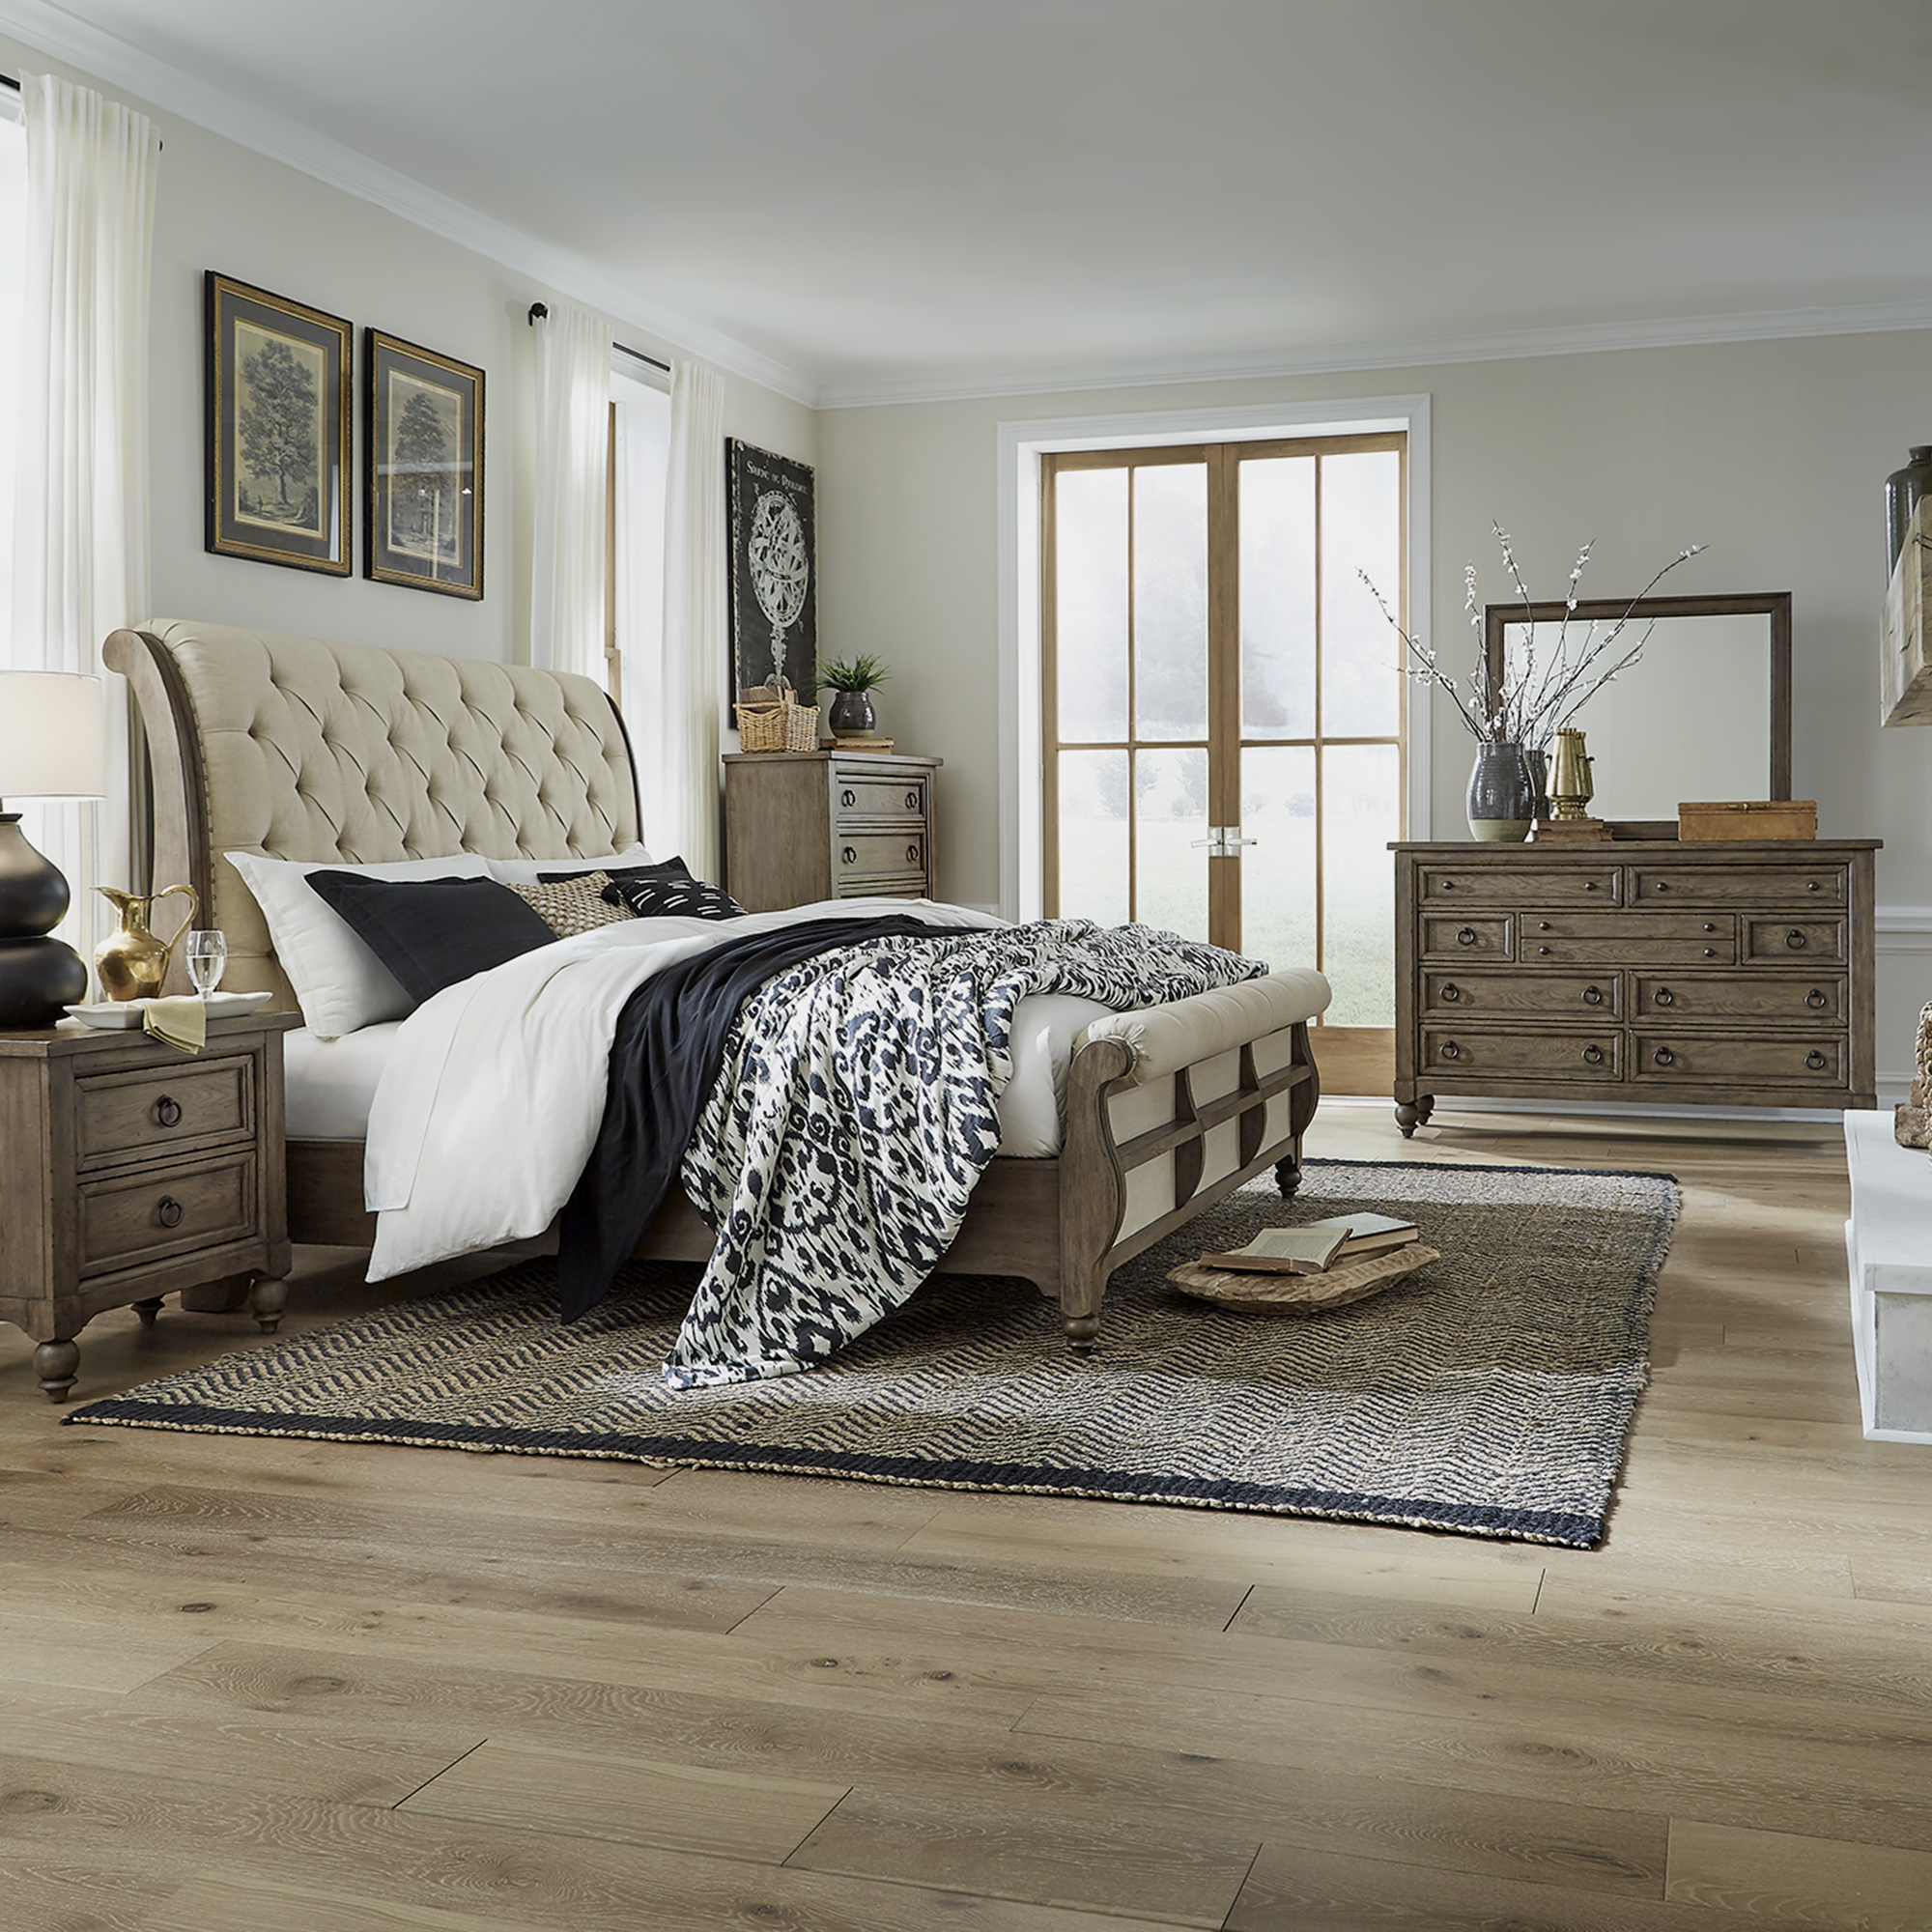 Americana Farmhouse Queen Sleigh Bedroom Group by Liberty Furniture at Esprit Decor Home Furnishings